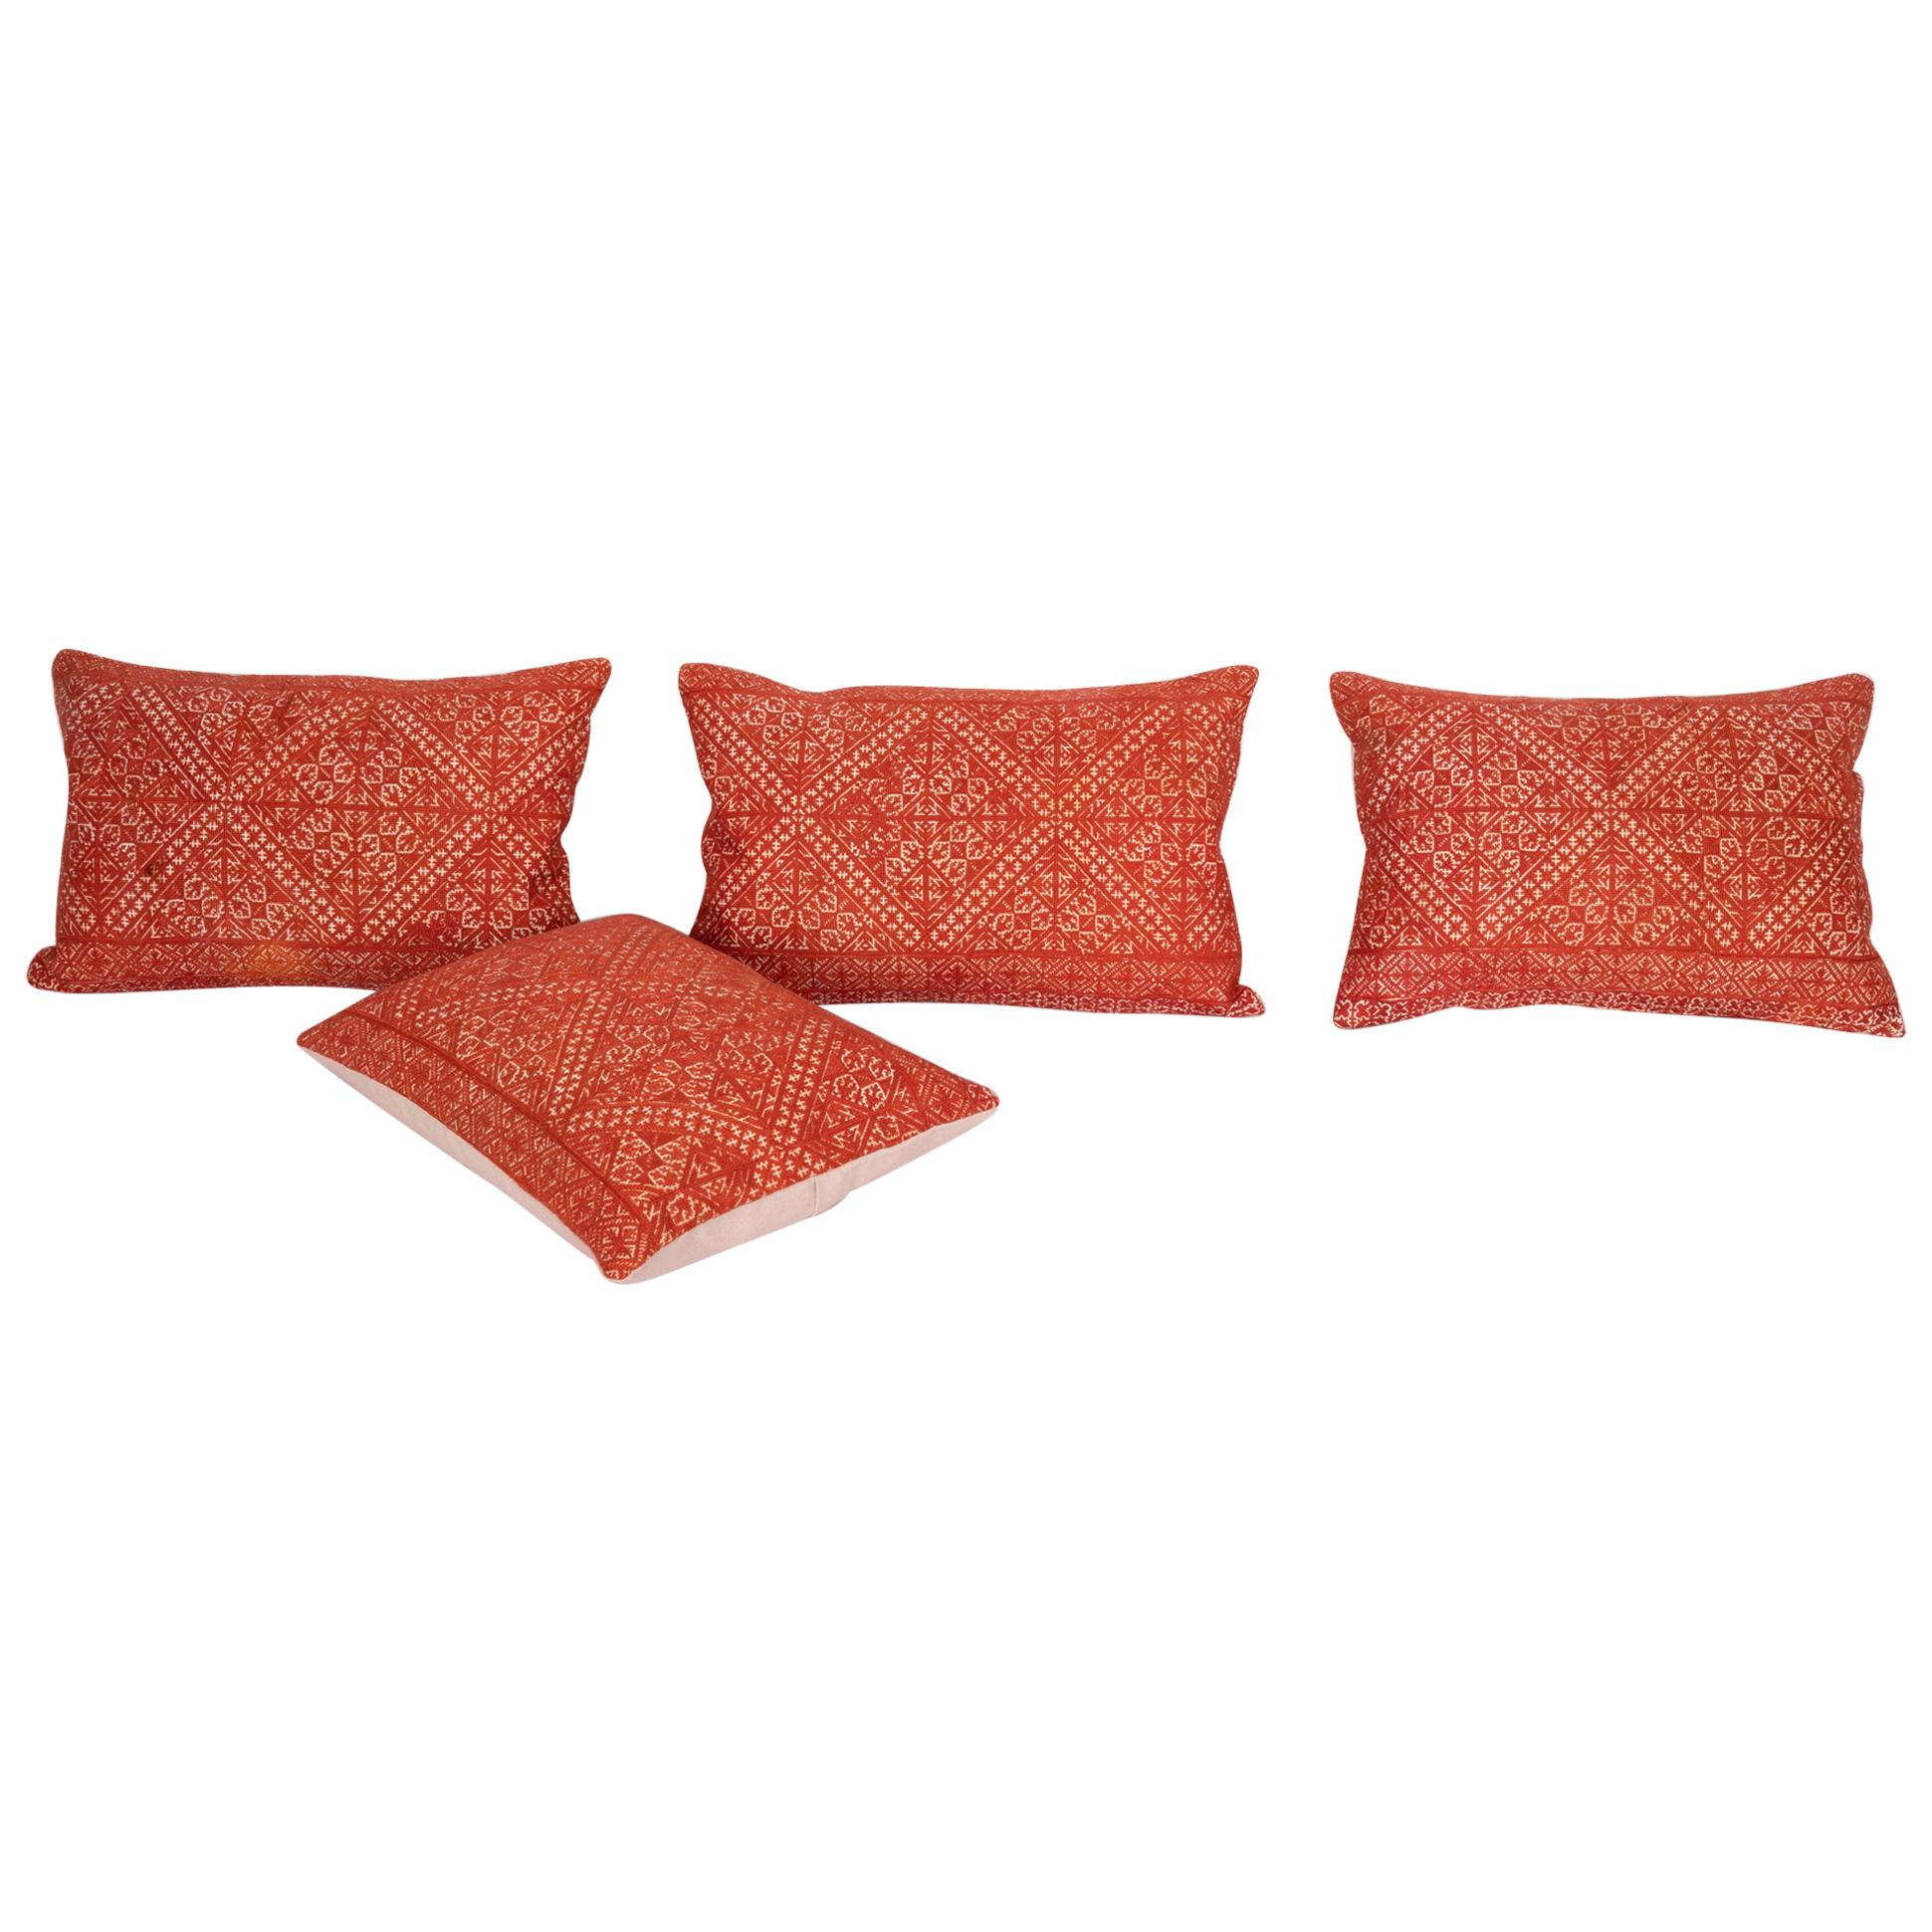 Pillow Case Made from an Early 20th Century Fez Embroidery from Morocco